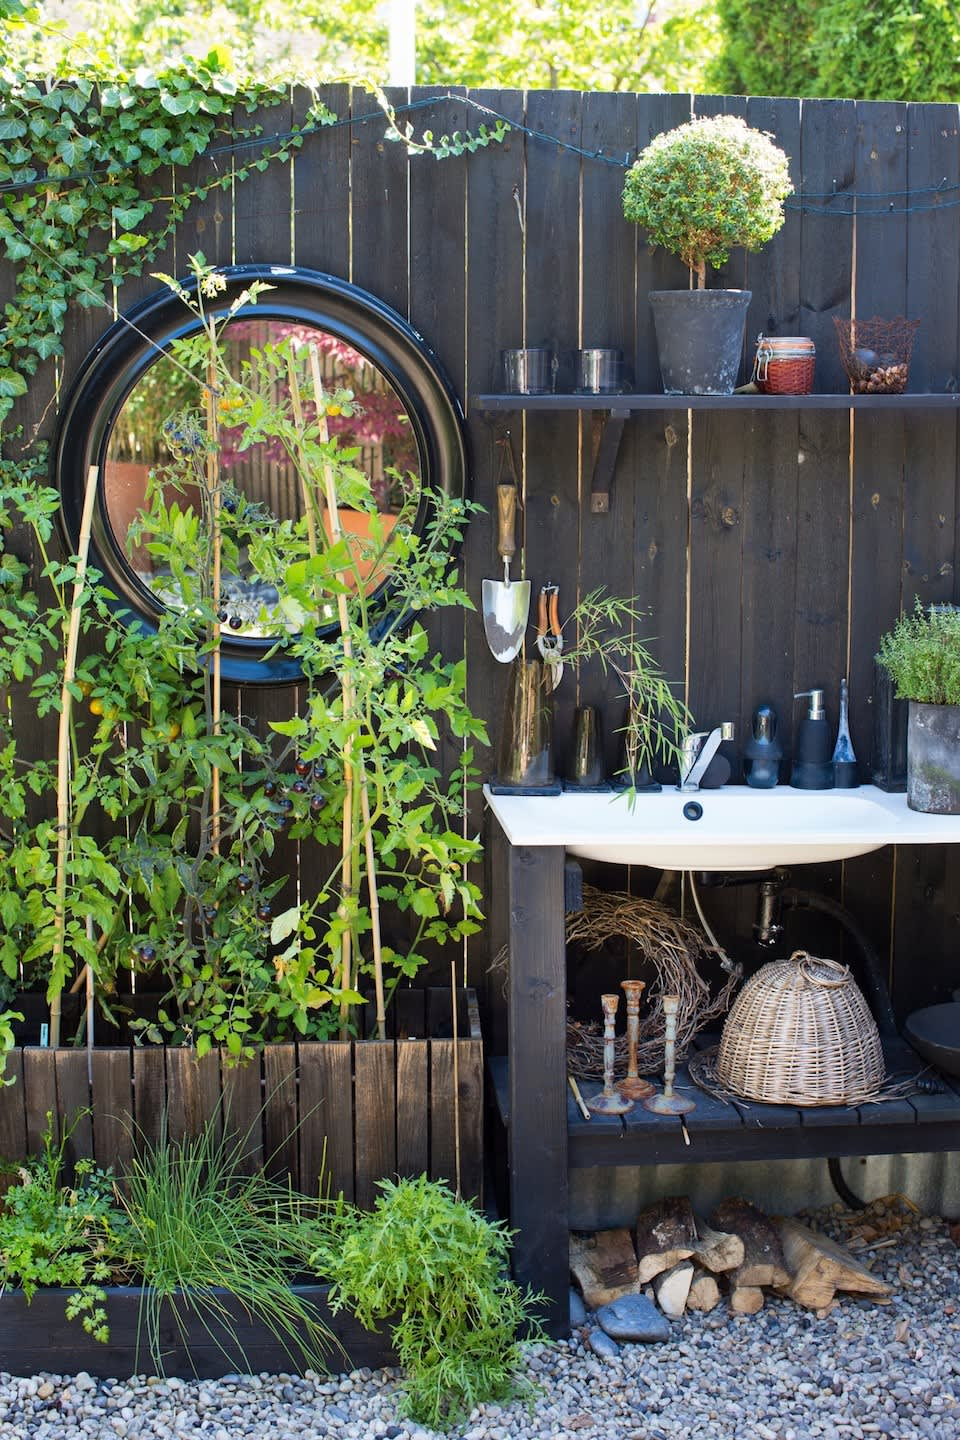 Against the sun-warmed paling, Anders grows tomatoes, lettuce and herbs.The IKEA sink, where the vegetables are rinsed, was given a home-made bottom-half.